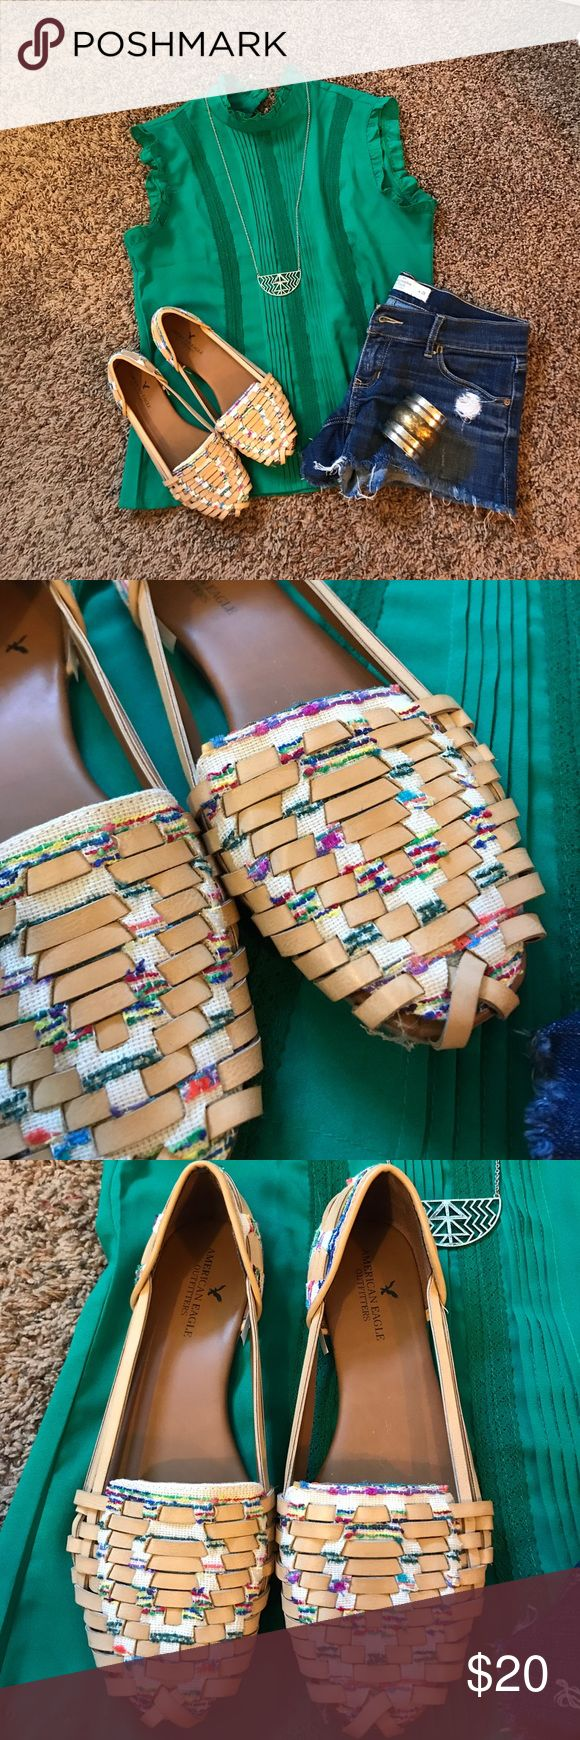 🌈American Eagle Aztec Shoes🌈 Super cute multi colored Boho sandals!  Just about every color is in these, so they will go with everything!  Perfect for any event!  Brand new and never been worn at all! American Eagle Outfitters Shoes Sandals